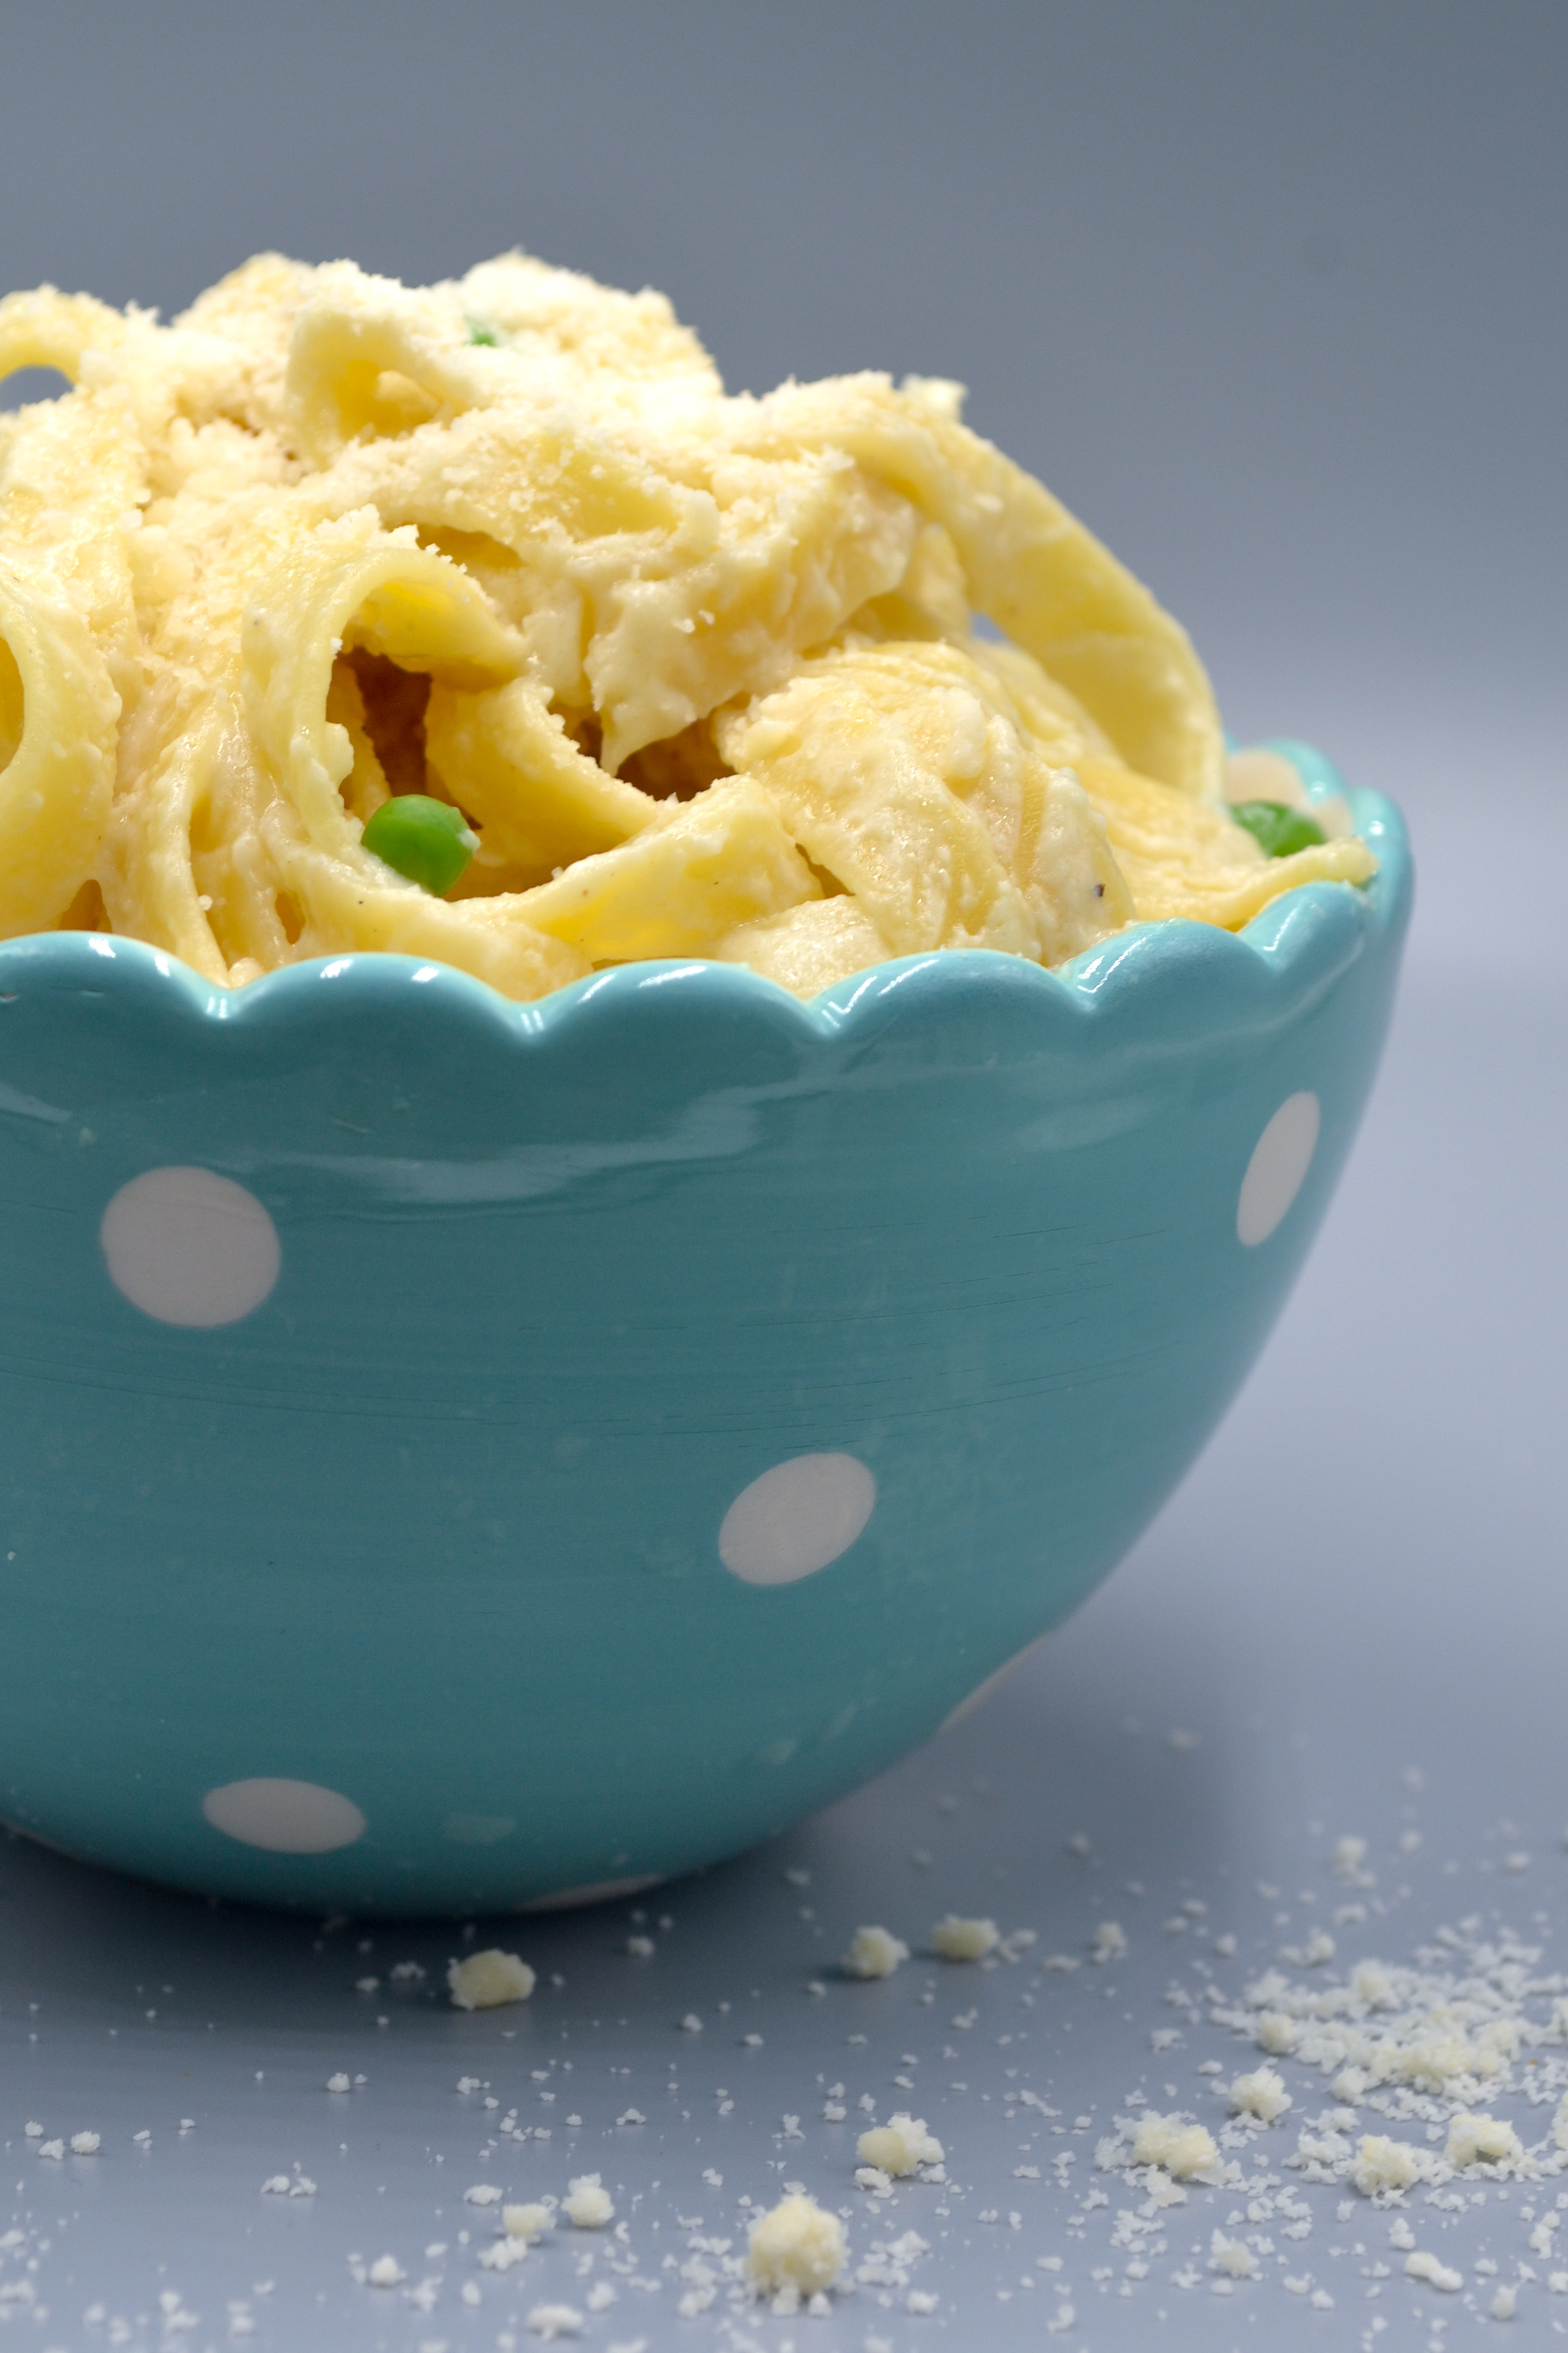 a bowl of fettuccine and peas covered in veggie alfredo and topped with parmesan cheese in a blue bowl with white polka dots on a grey background with parmesan cheese on the base.